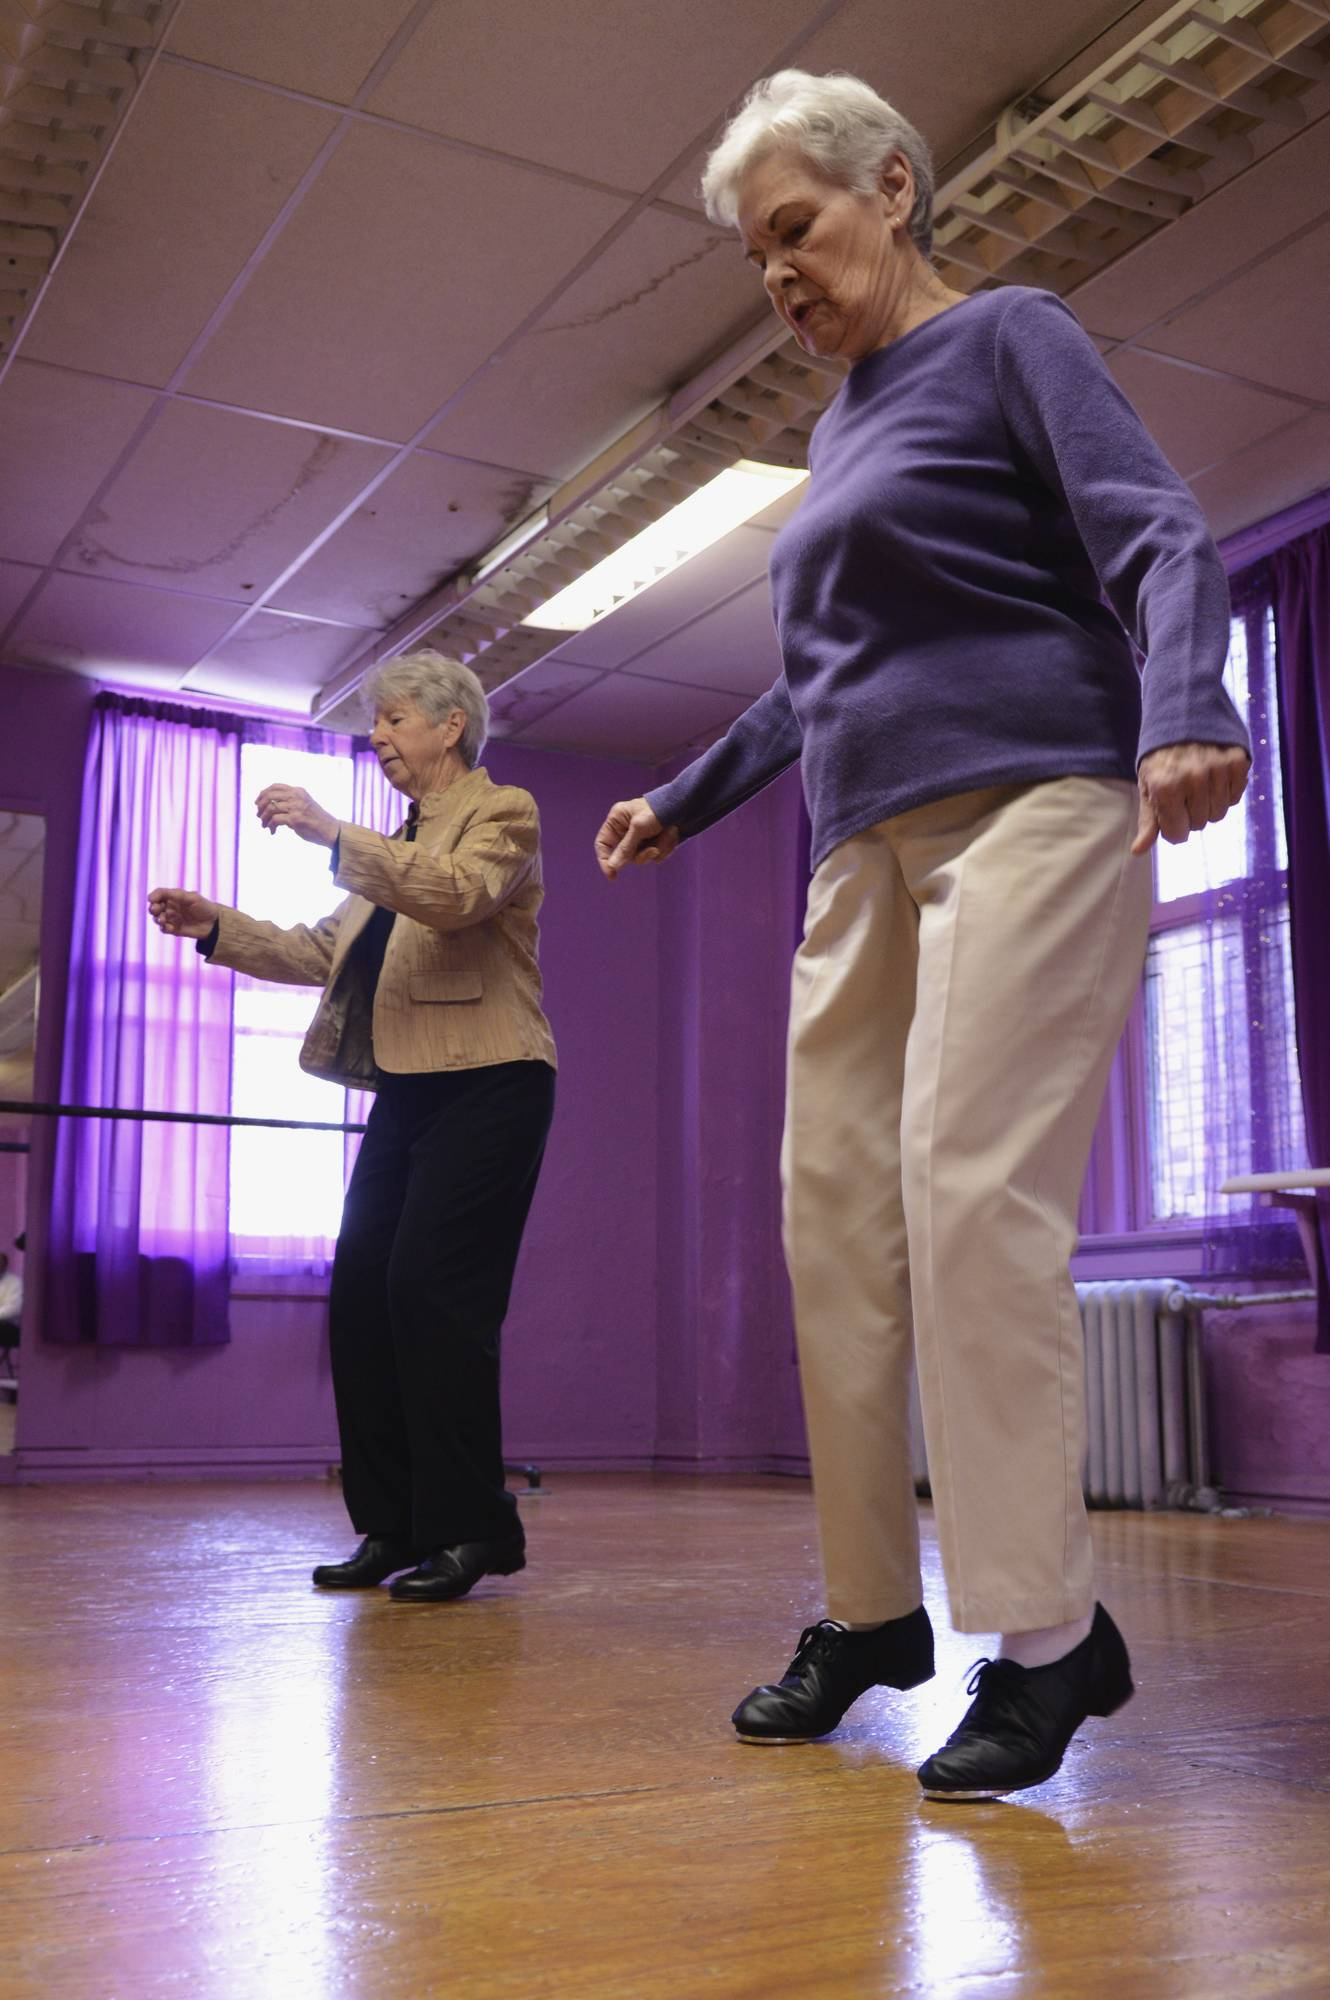 Ruth Harter, 89, right, and Betty Berneking, 79, of Davenport, Iowa, practice their tap-dancing routine at Kim's School of Dance & Tumbling in Moline.